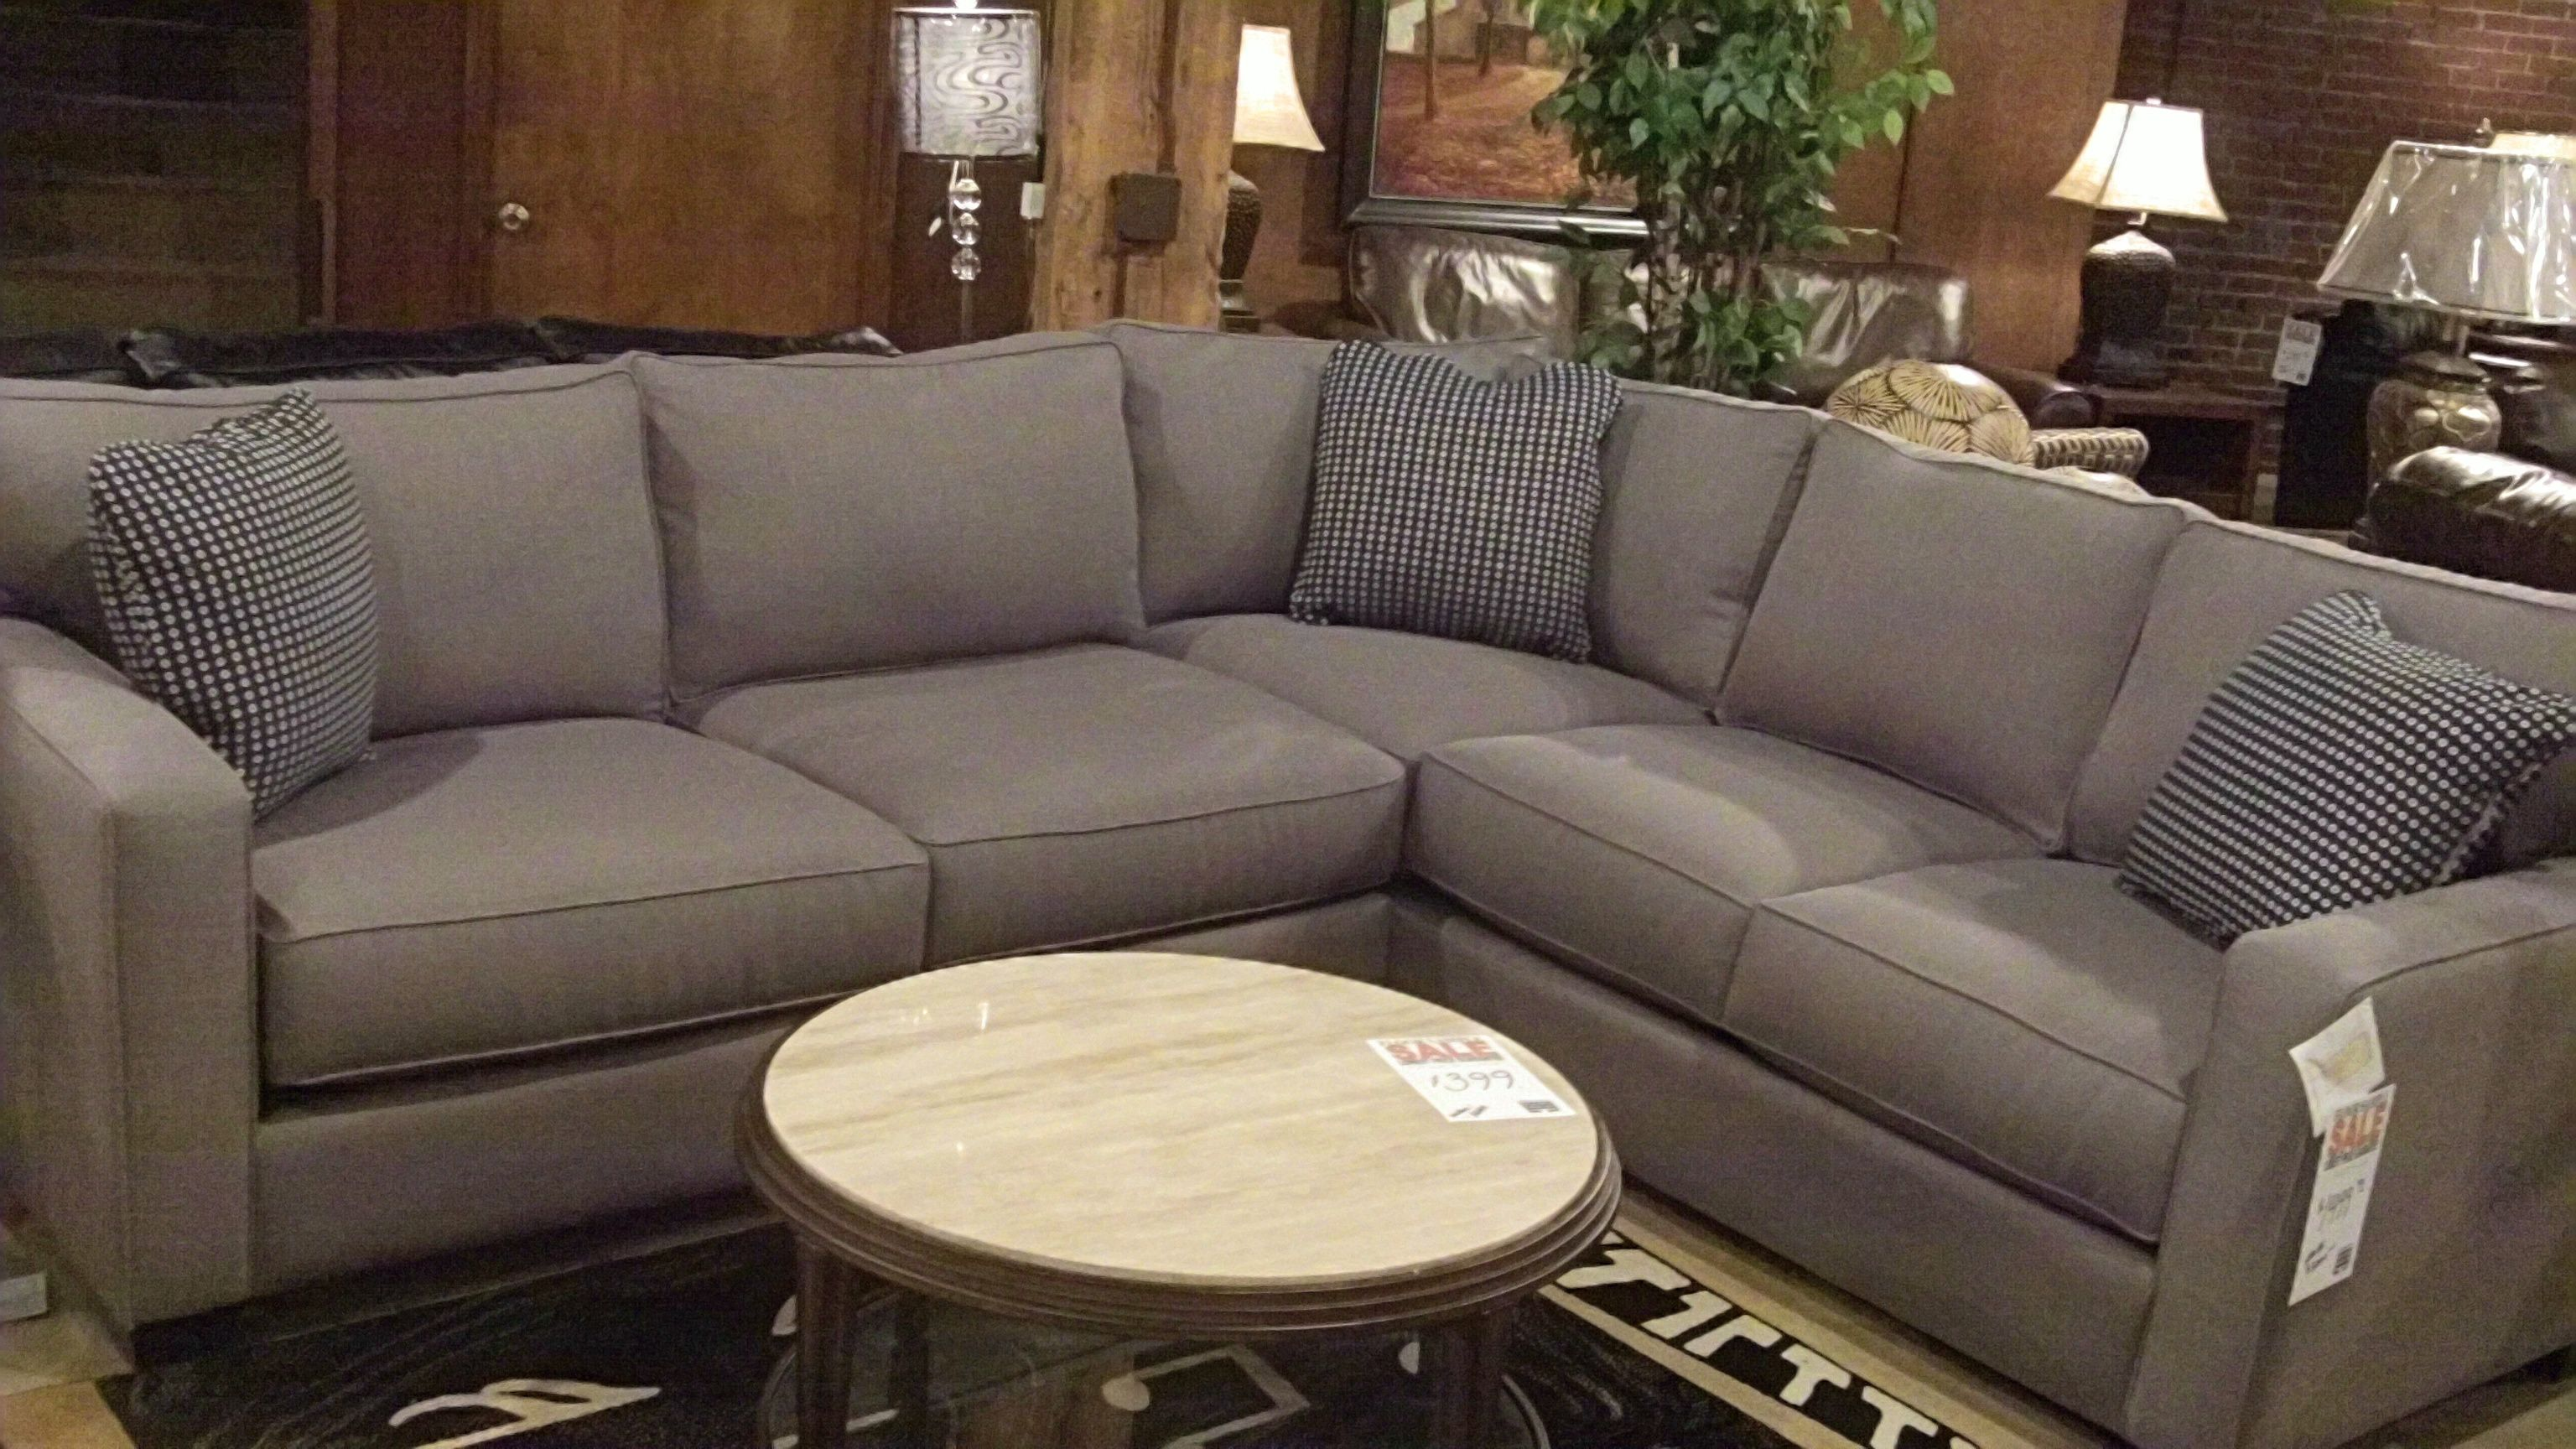 Jonathan louis sectional sofa available to custom order at mathis brothers furniture in tulsa Home furniture rental tulsa